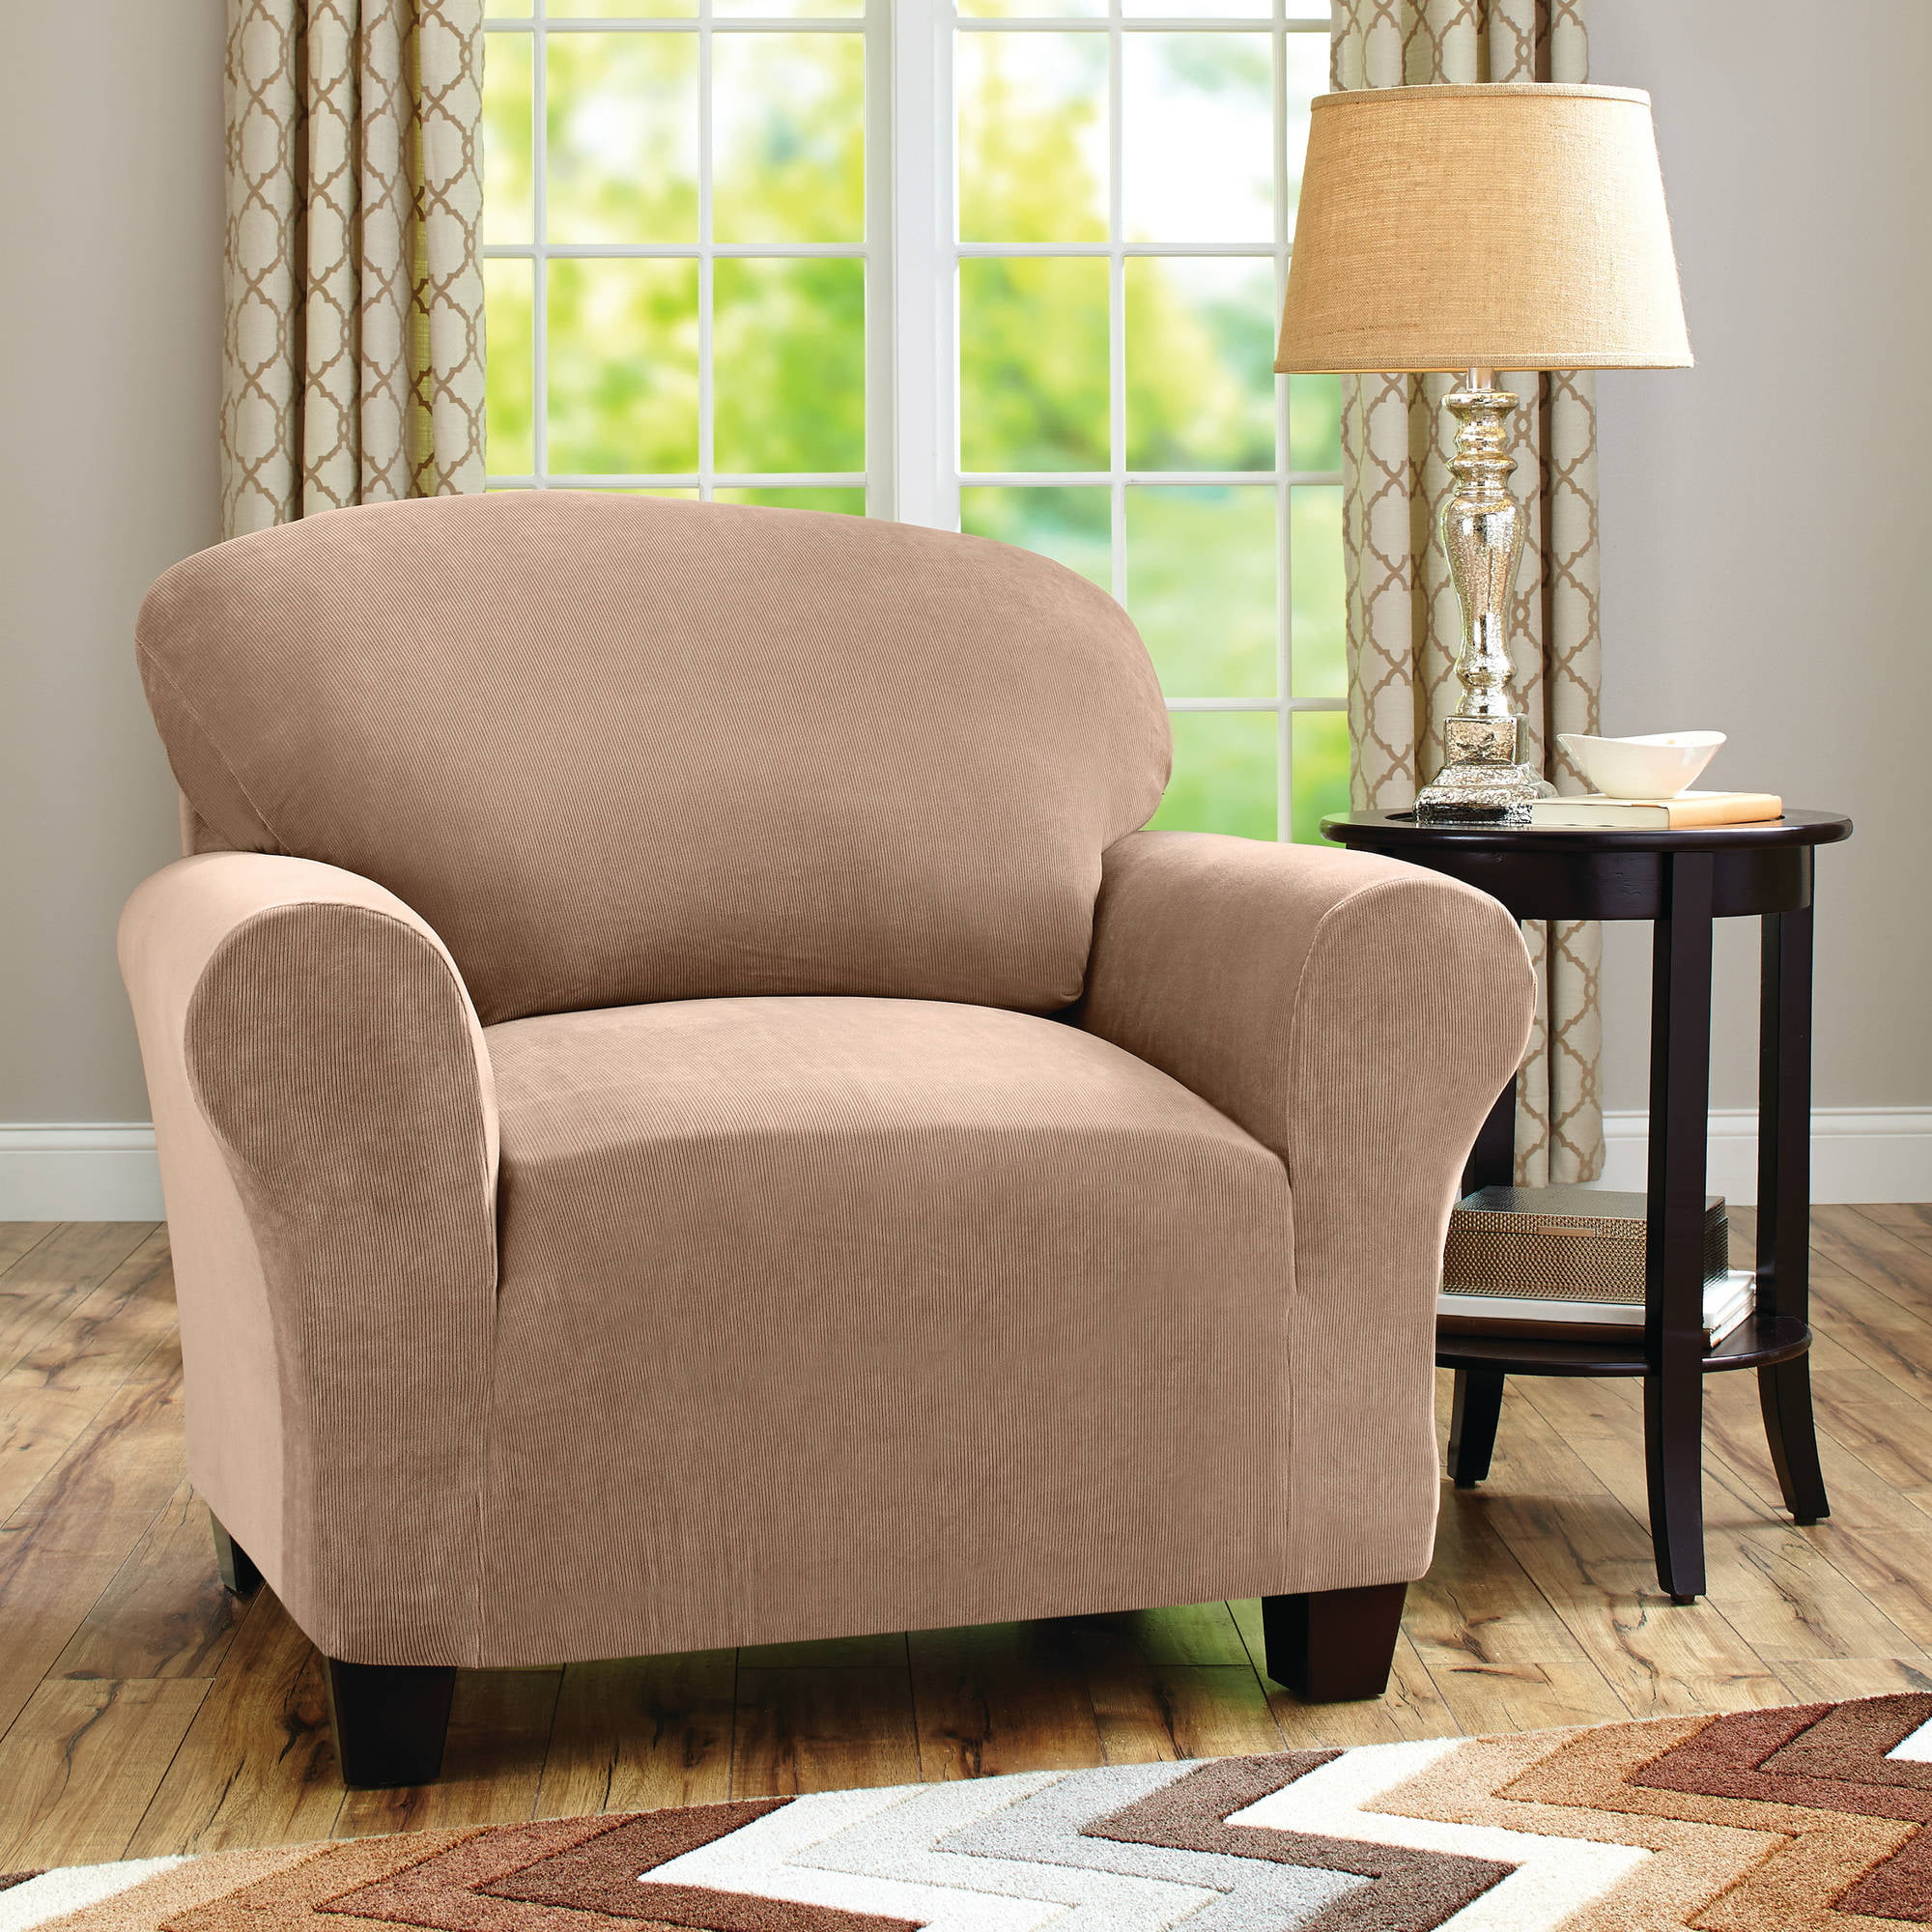 Better Homes and Gardens e Piece Stretch Fine Corduroy Chair